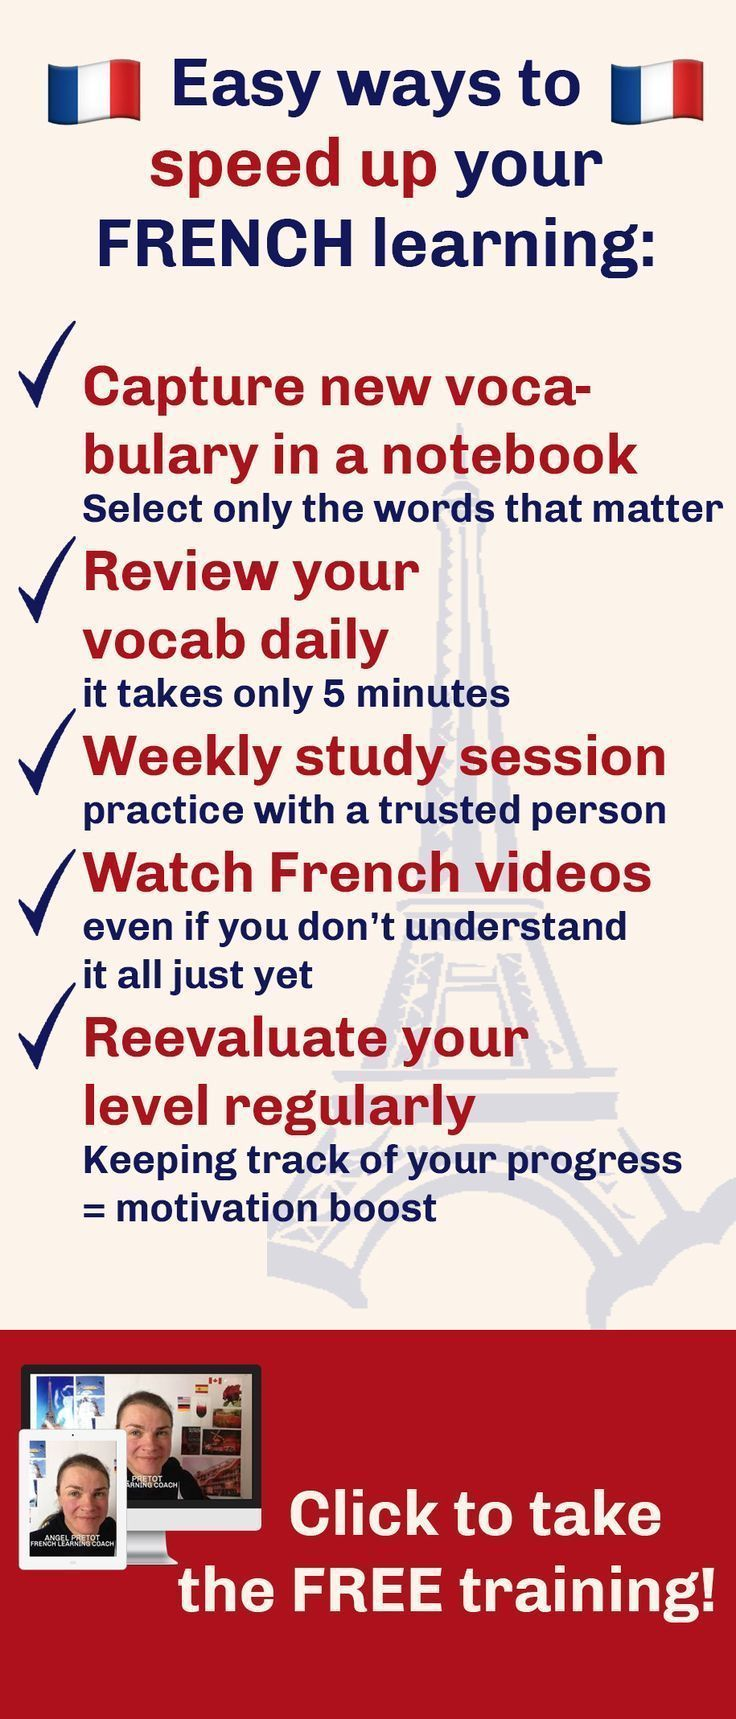 5 easy ways to speed up your French learning — French Fluency